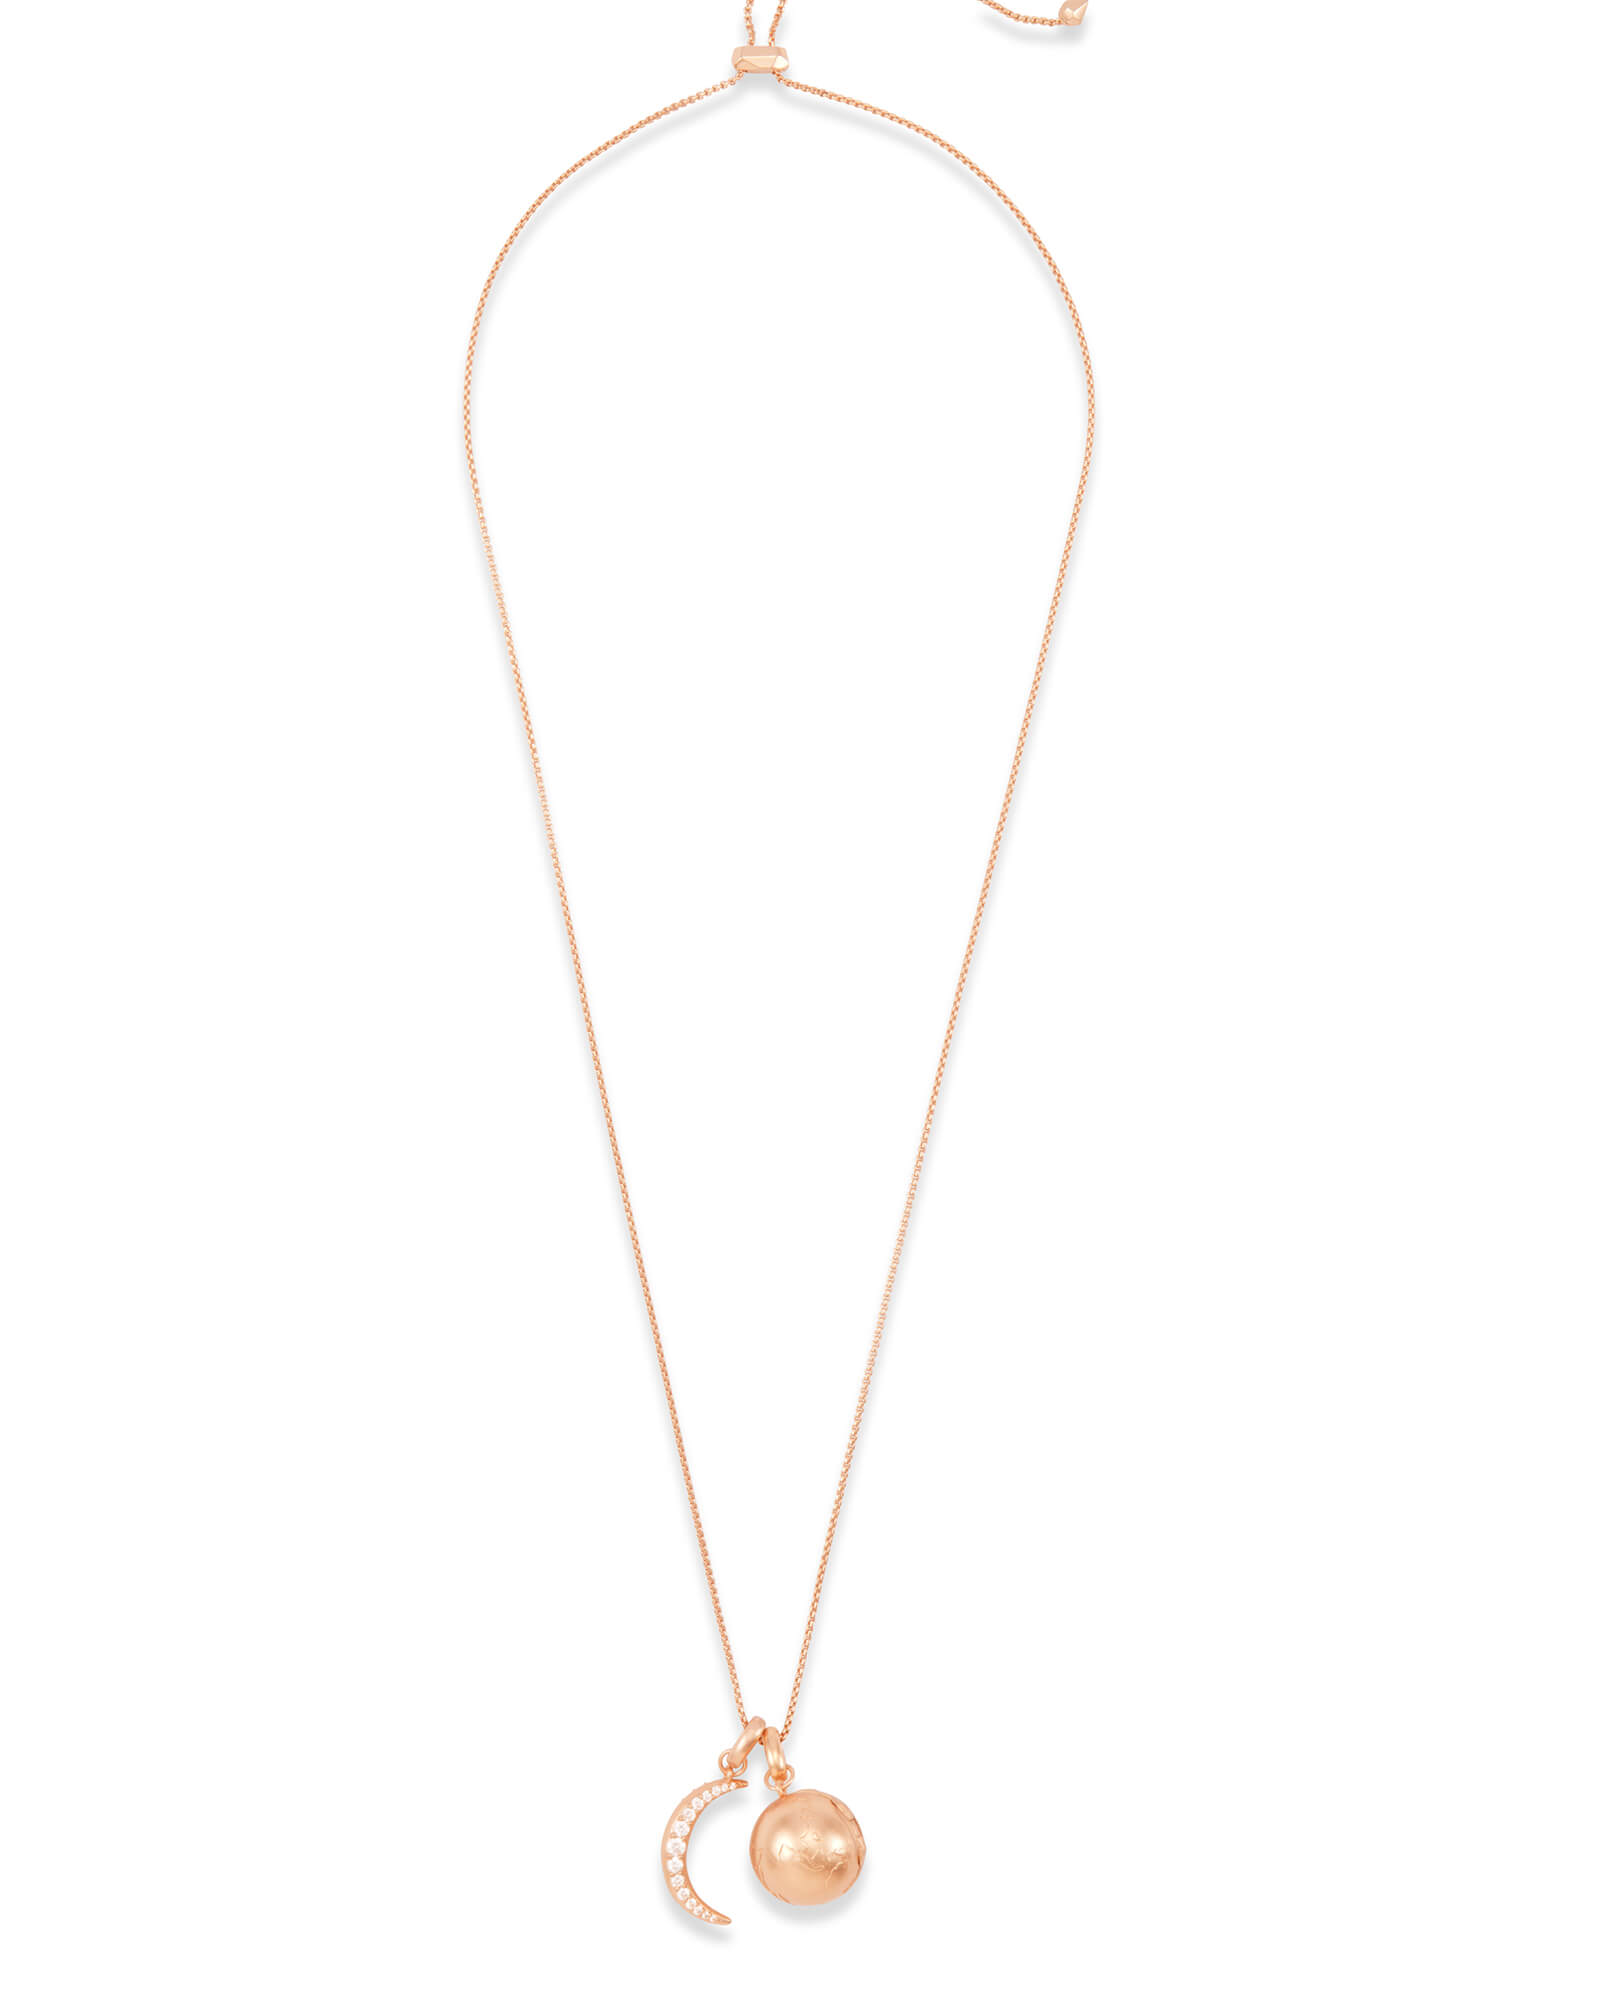 To the Moon and Back Charm Necklace Set in Rose Gold